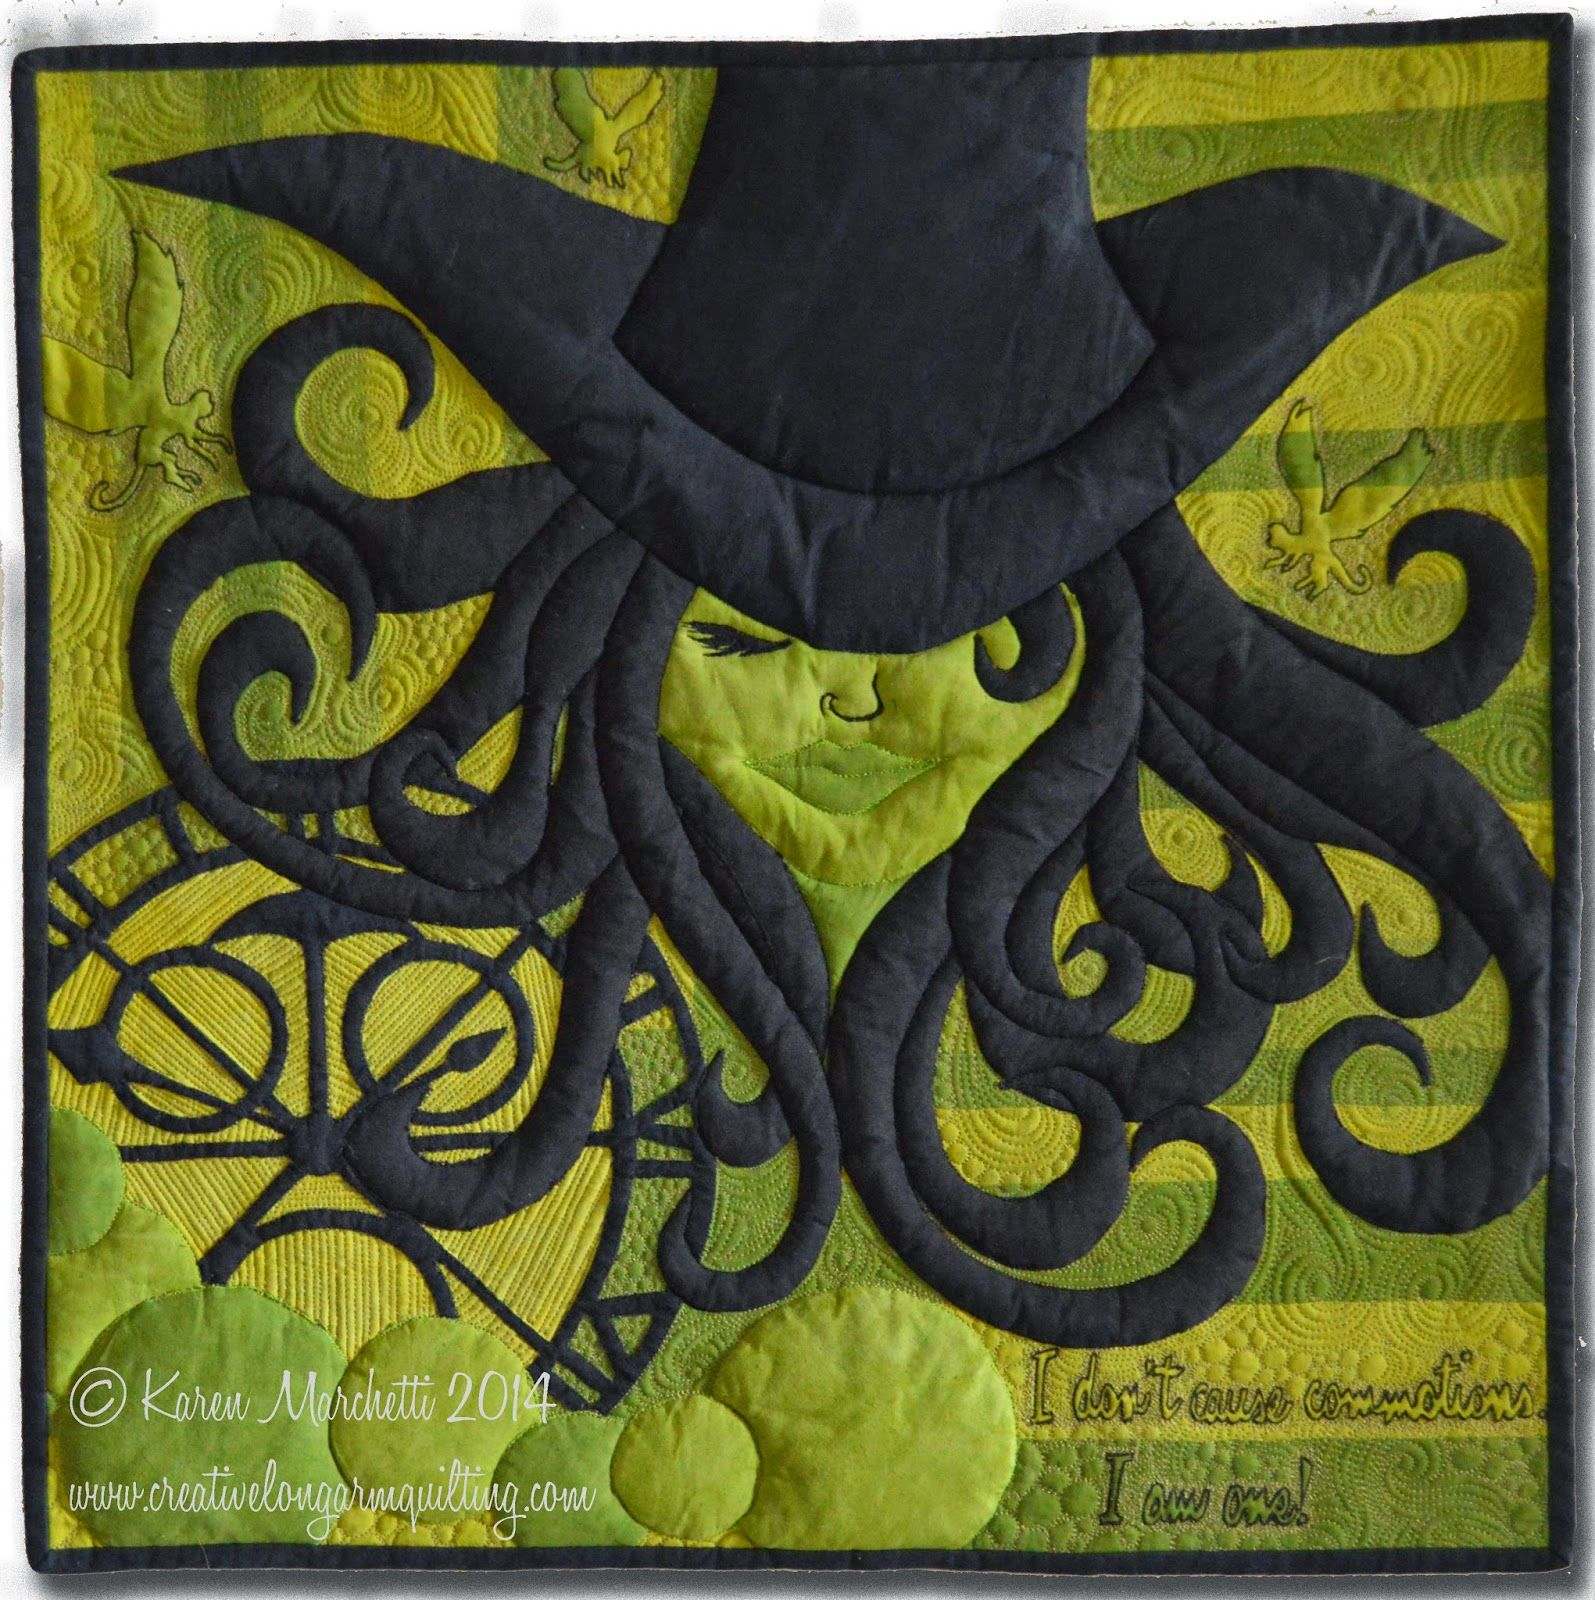 Crooked Stitches: WICKED Challenge